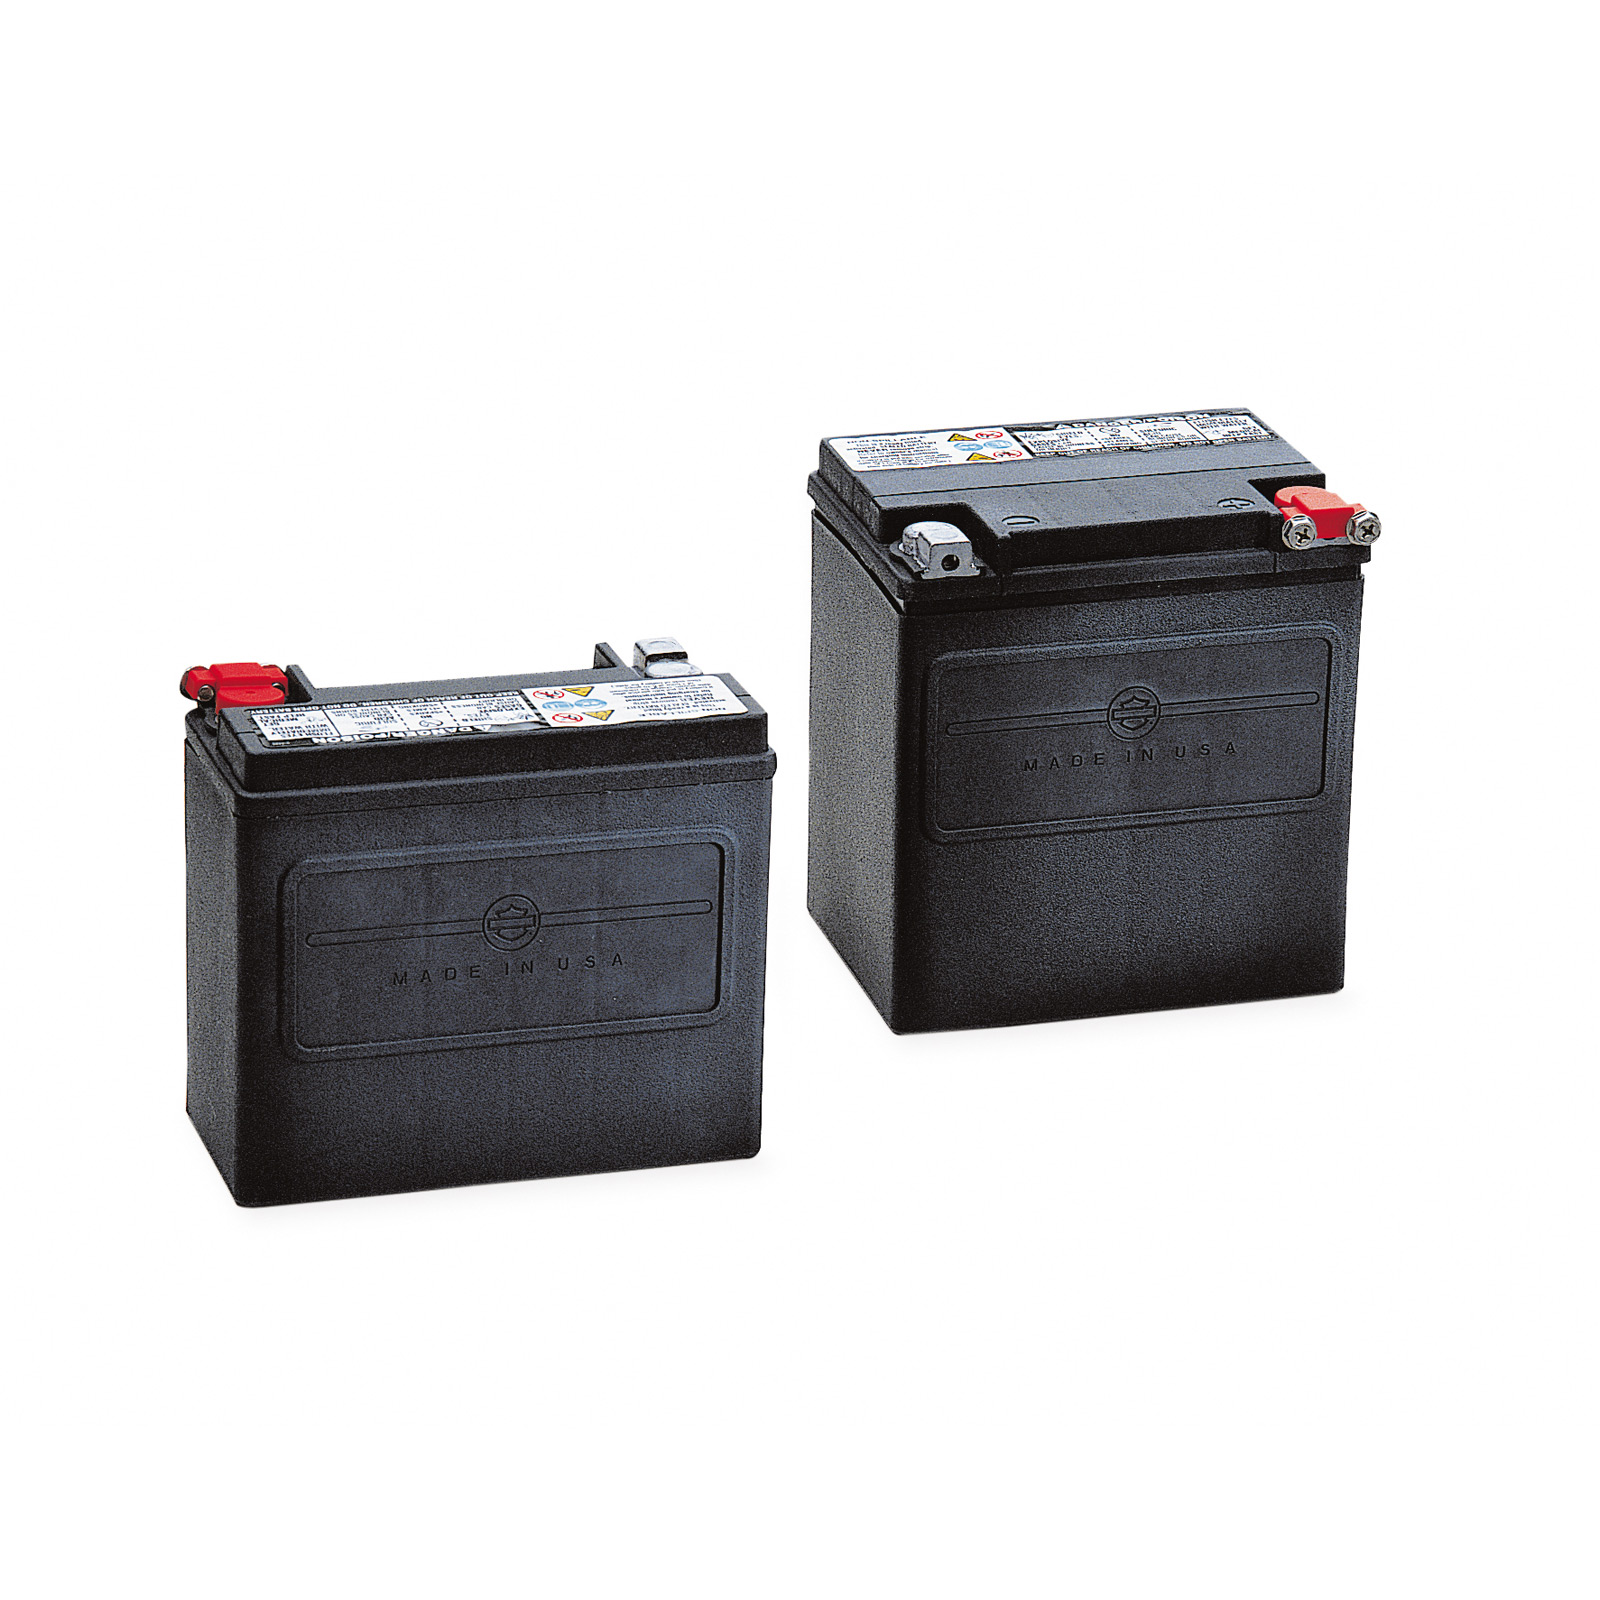 genuine harley davidson 65989 97c battery sealed 19 ah dual terminal ebay. Black Bedroom Furniture Sets. Home Design Ideas